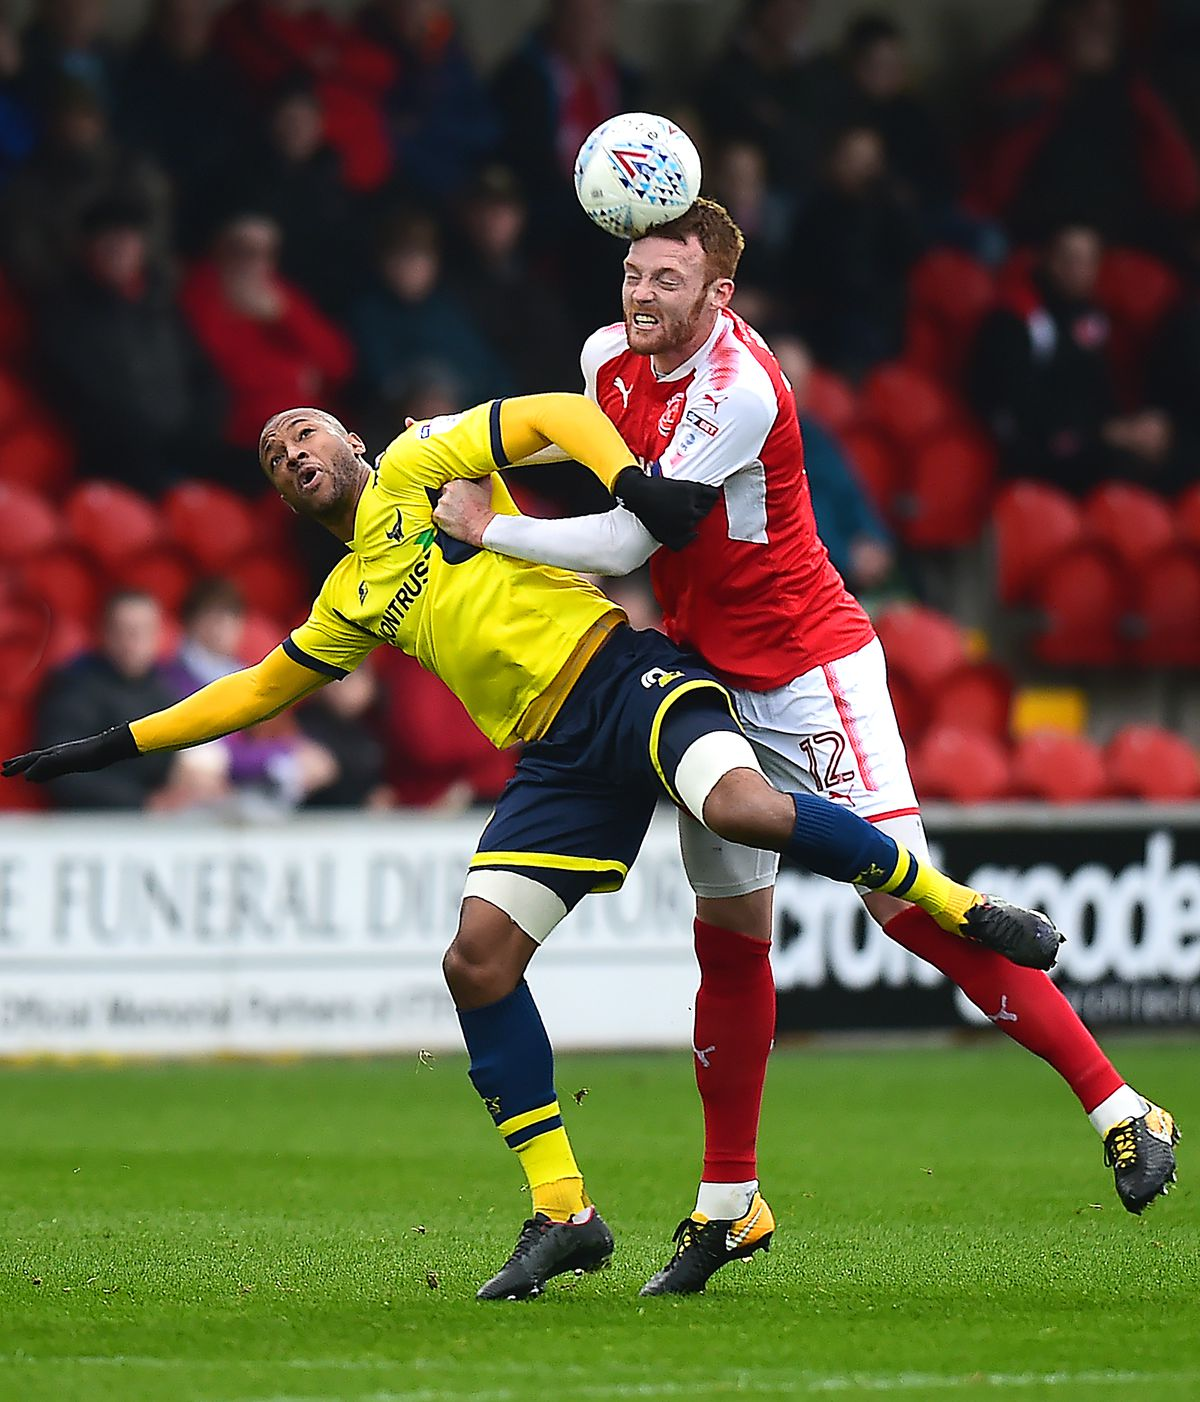 Fleetwood Town v Oxford United - Sky Bet League One